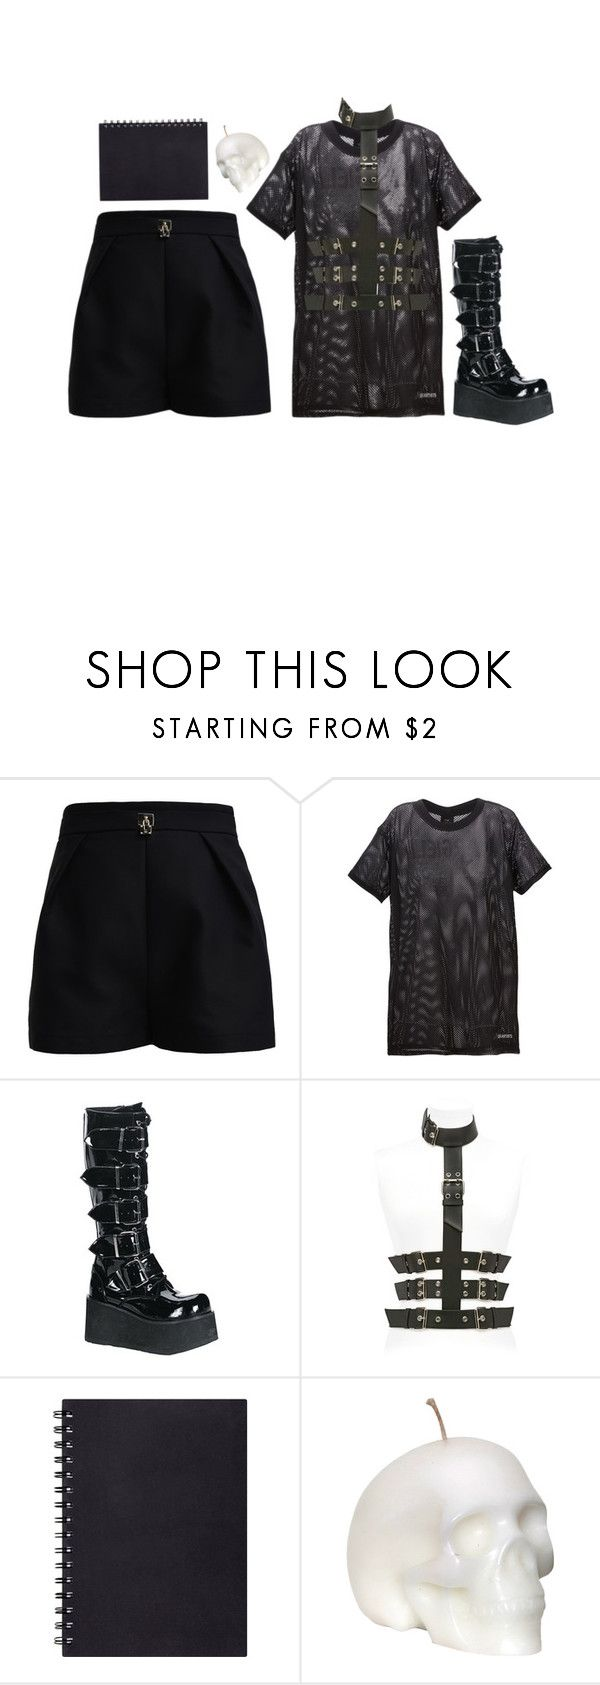 """""""Untitled #382"""" by goth-proxy ❤ liked on Polyvore featuring Elisabetta Franchi, LES (ART)ISTS, Giuseppe Zanotti, Dark and gothgoth"""